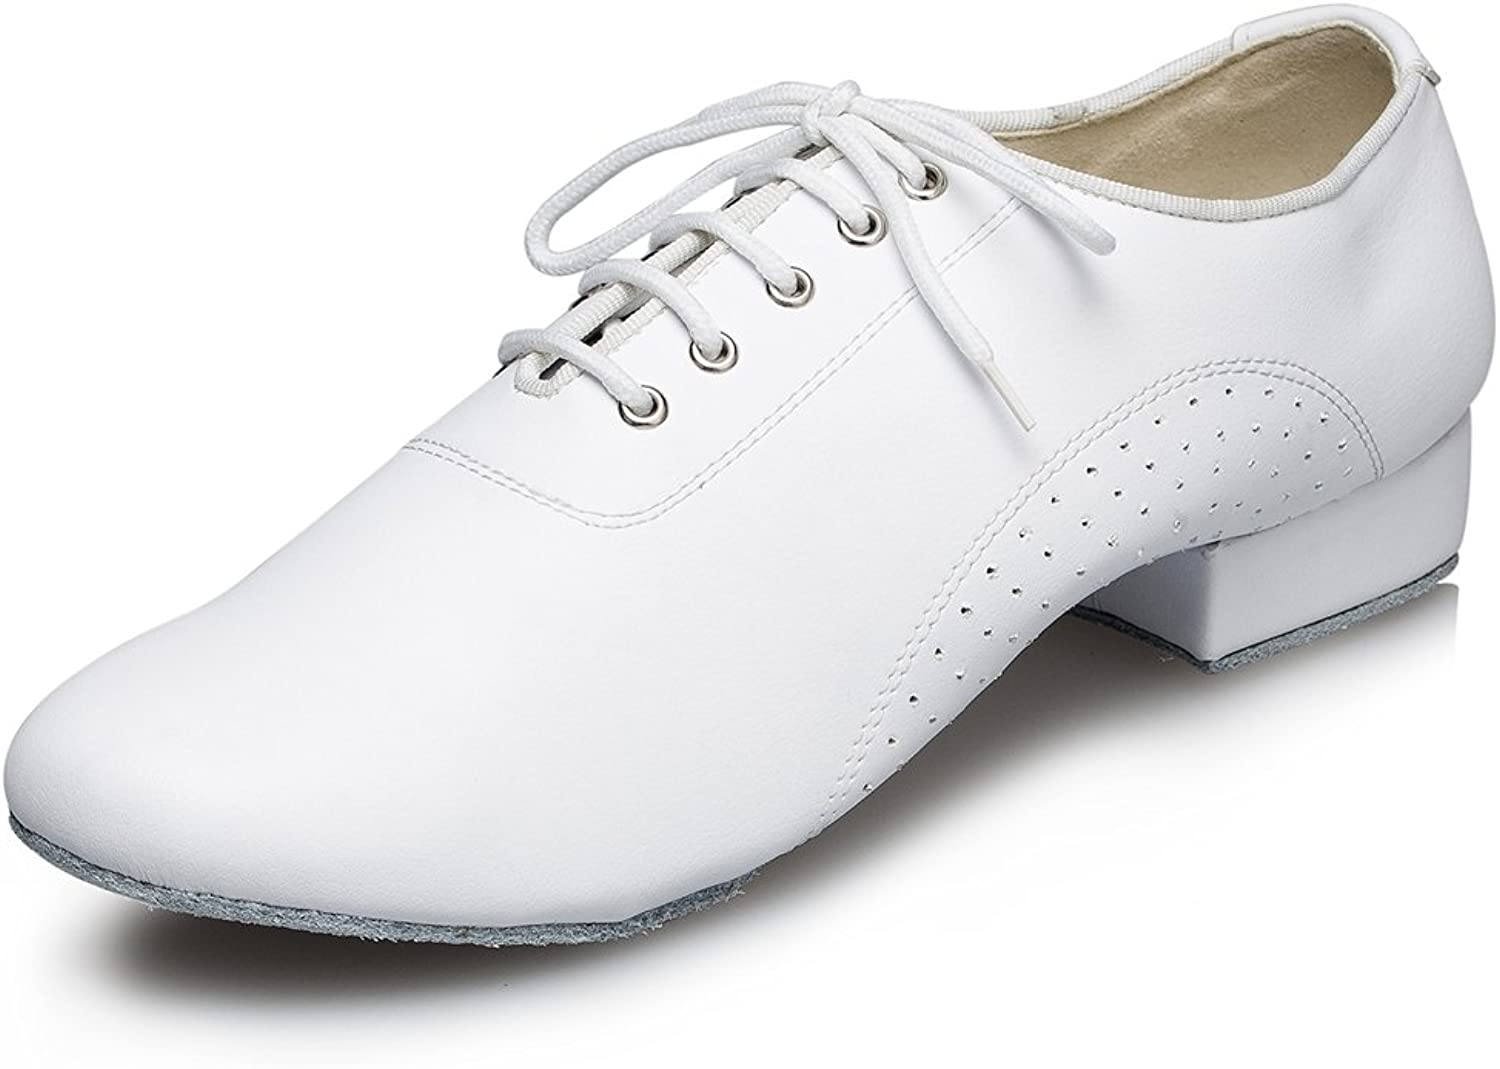 Miyoopark Men's Simple Hot Leather Lace up Dance shoes Wedding shoes